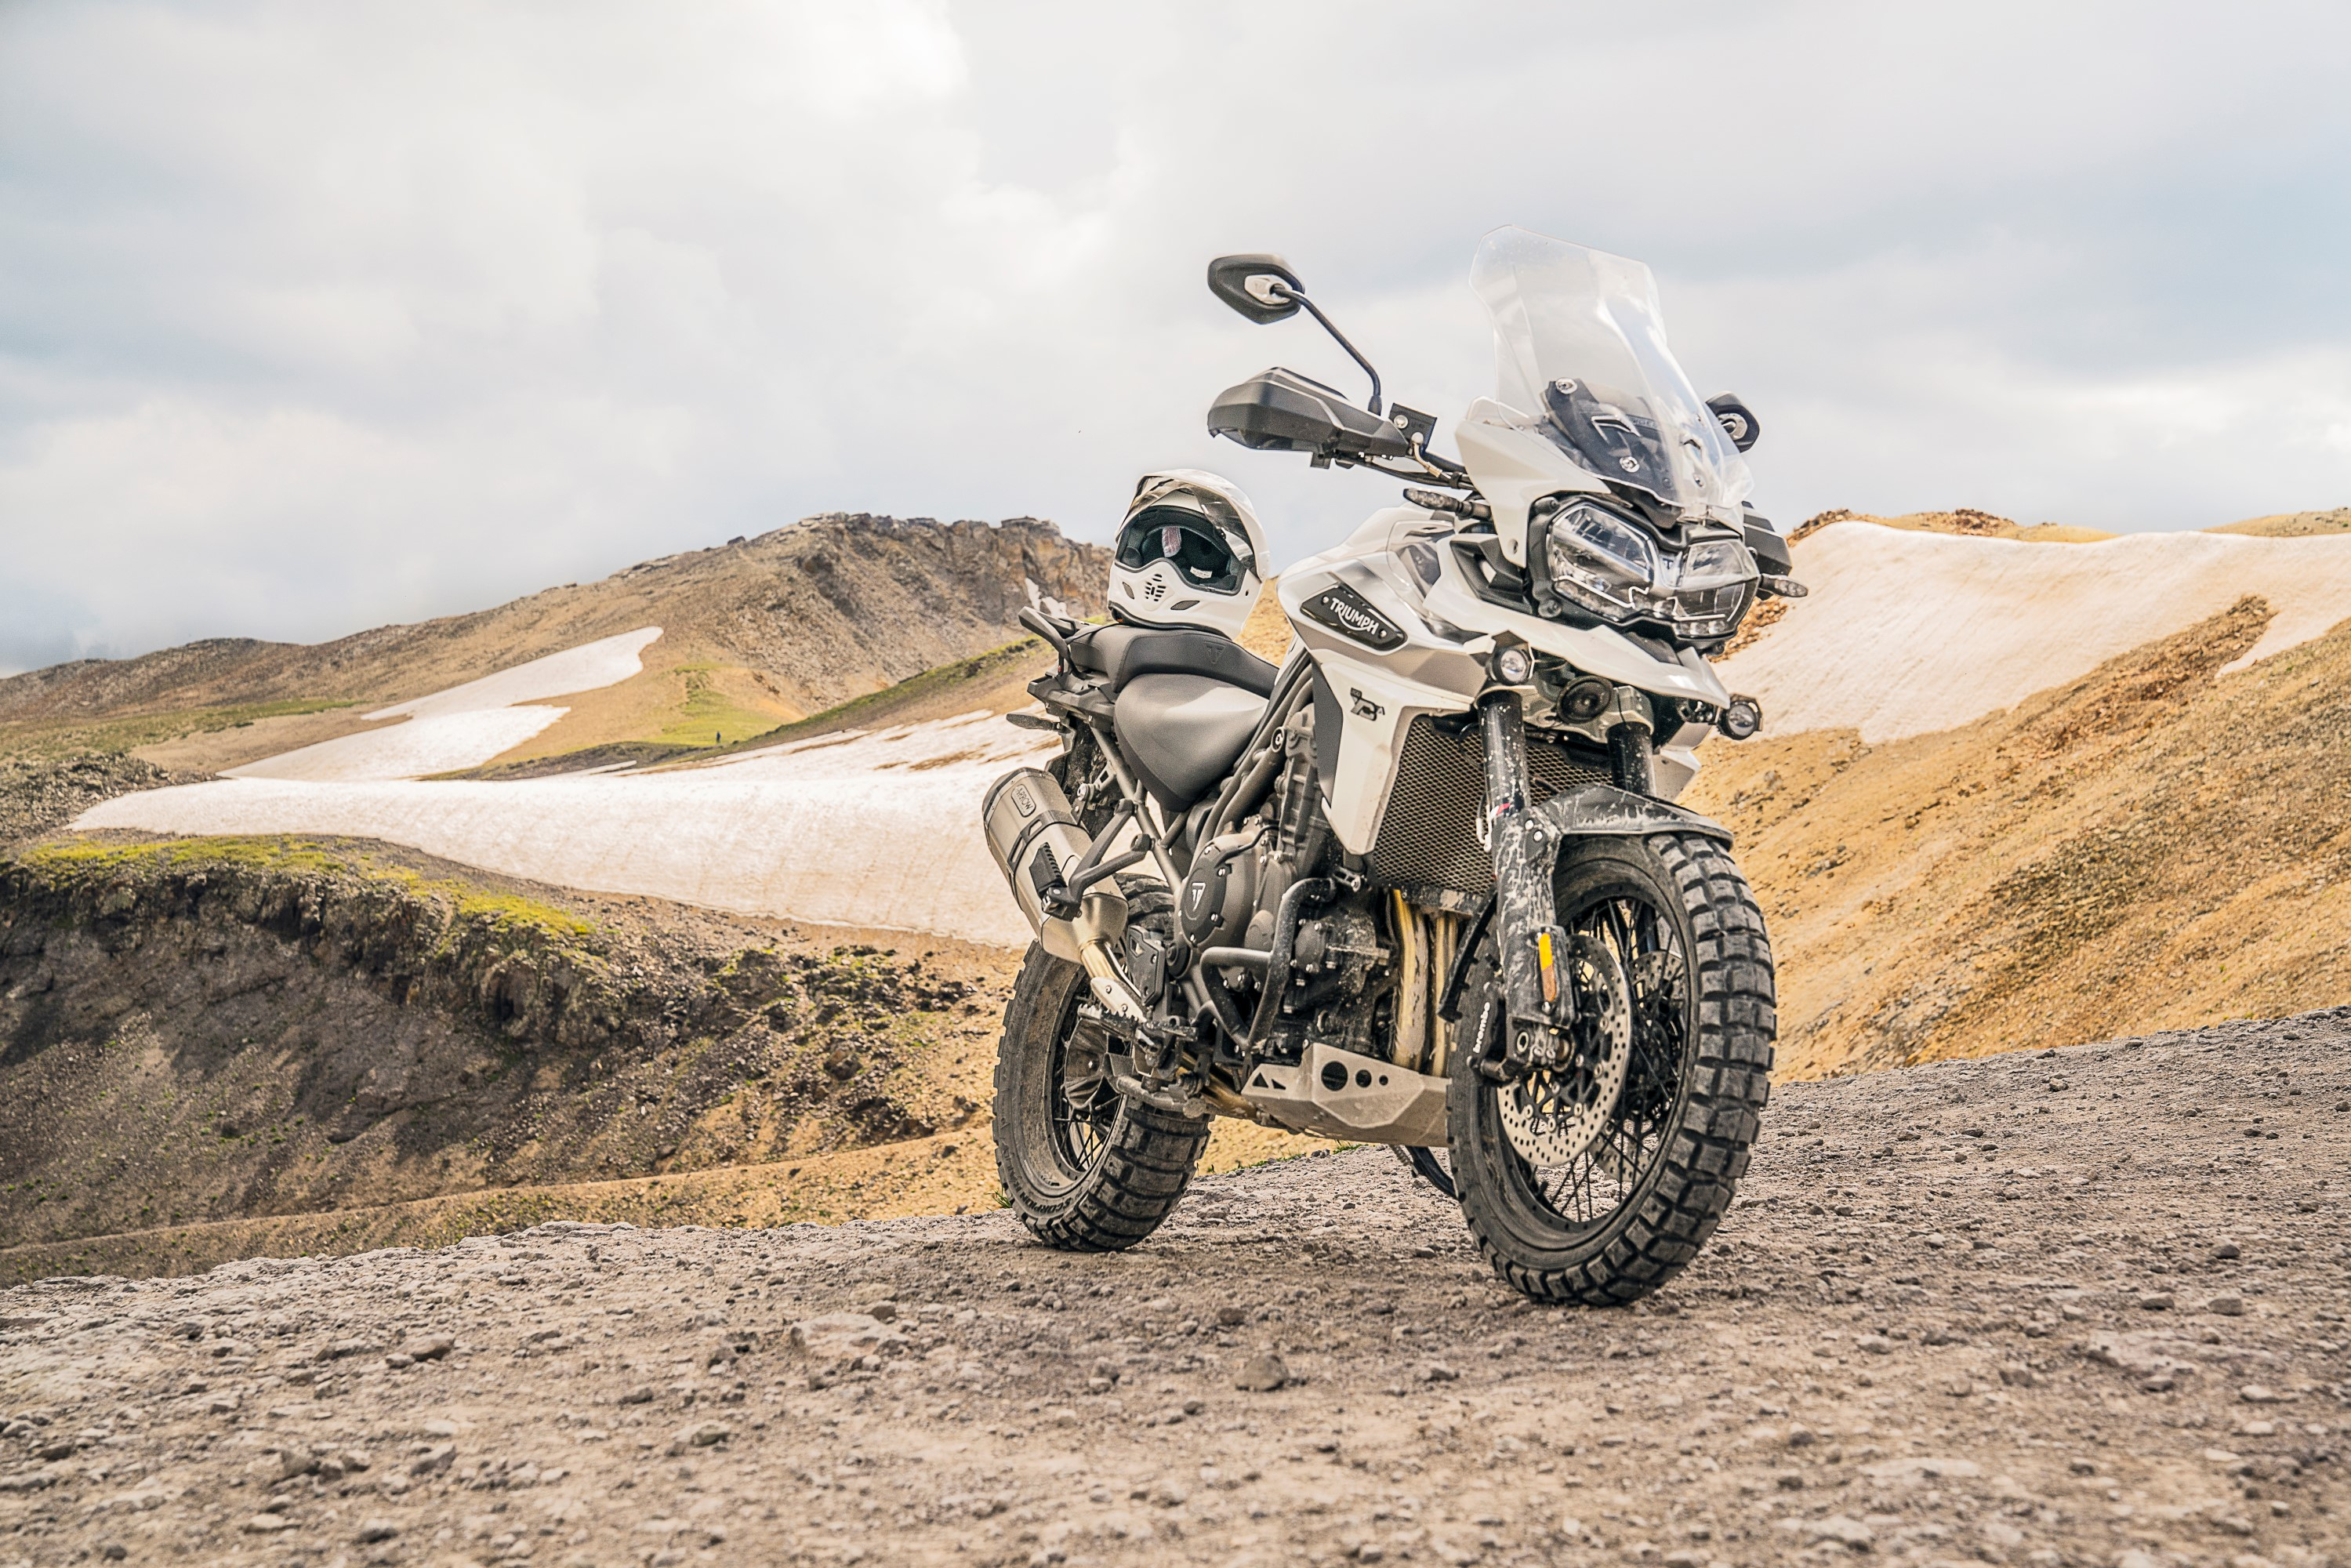 2018 Triumph Tiger 1200 XC Pictures, Photos, Wallpapers